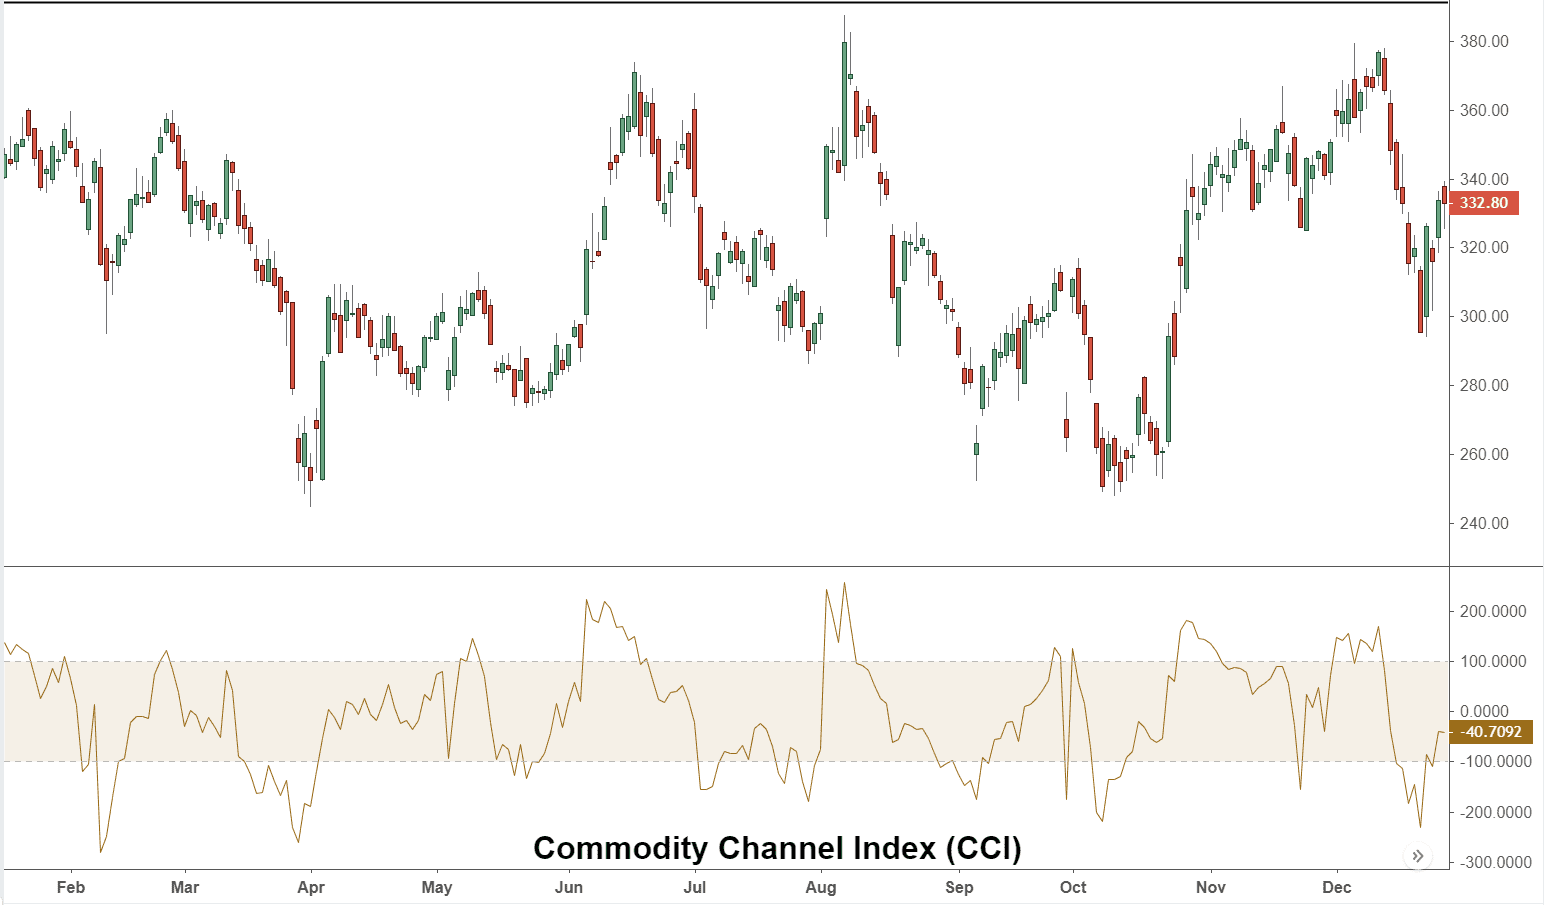 Commodity Channel Index - CCI Definition and Uses